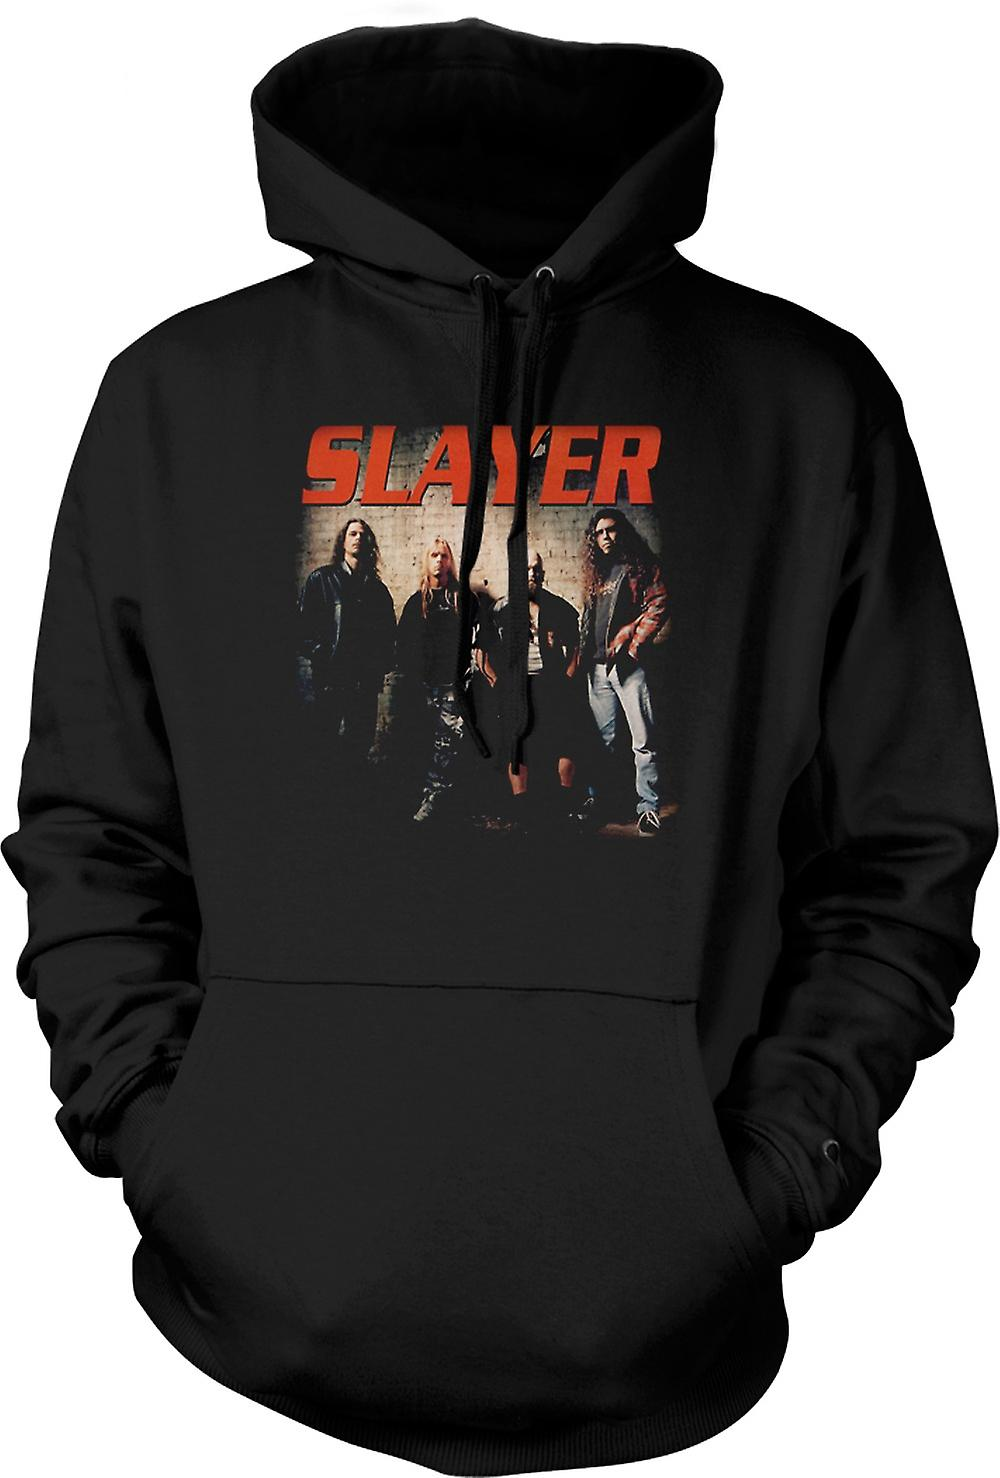 Mens Hoodie - Slayer - Heavy metalband